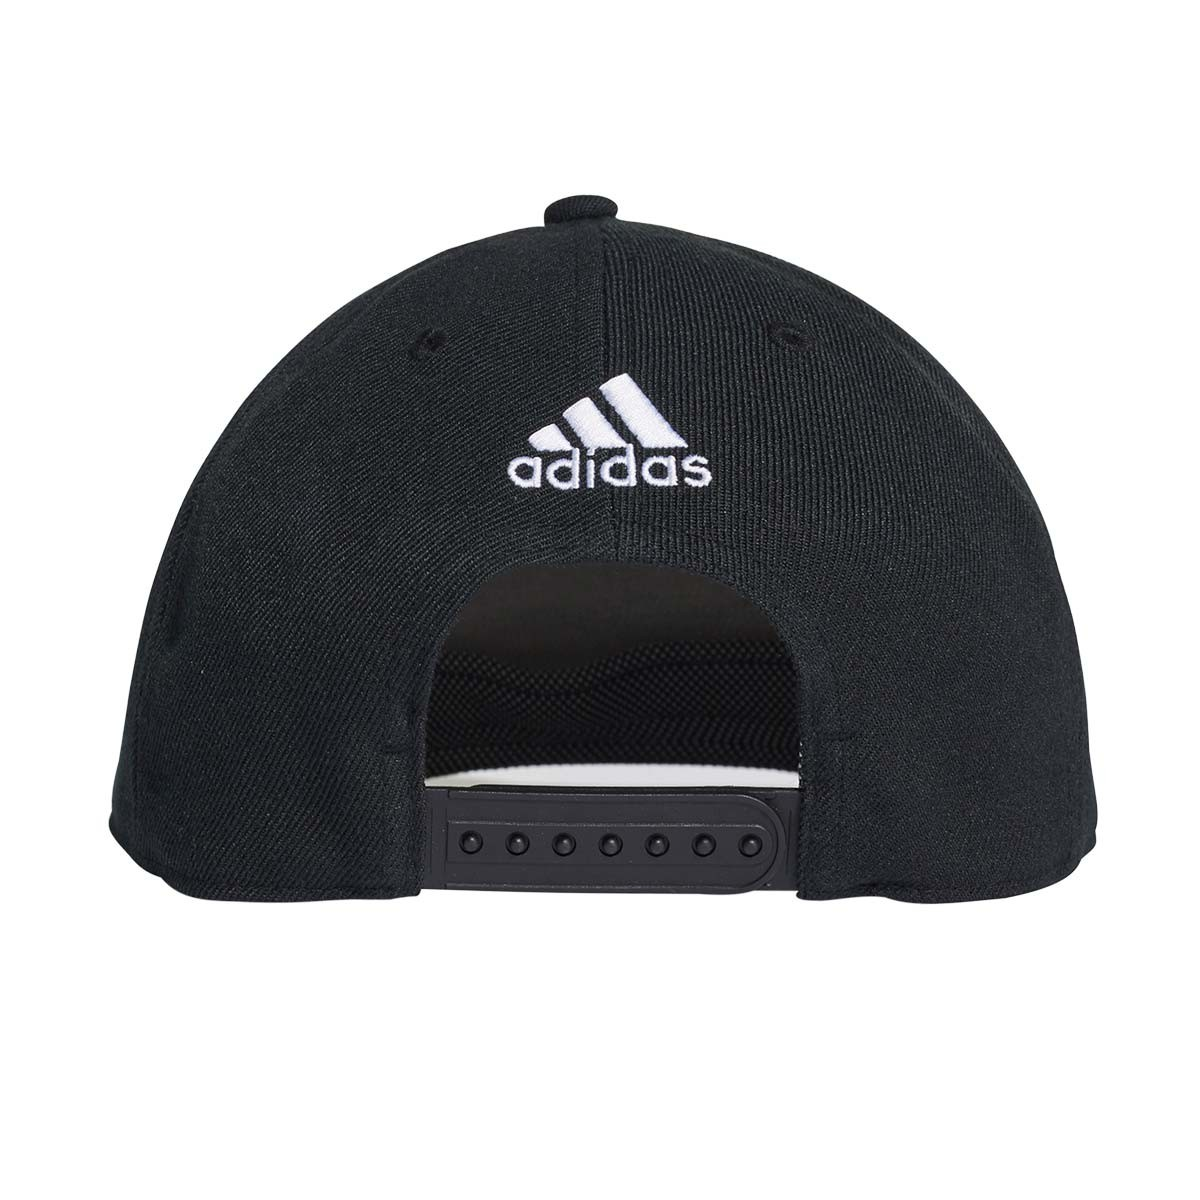 7bb54a7d30d19 Cap adidas FS H90 2018-2019 Black-White - Football store Fútbol Emotion